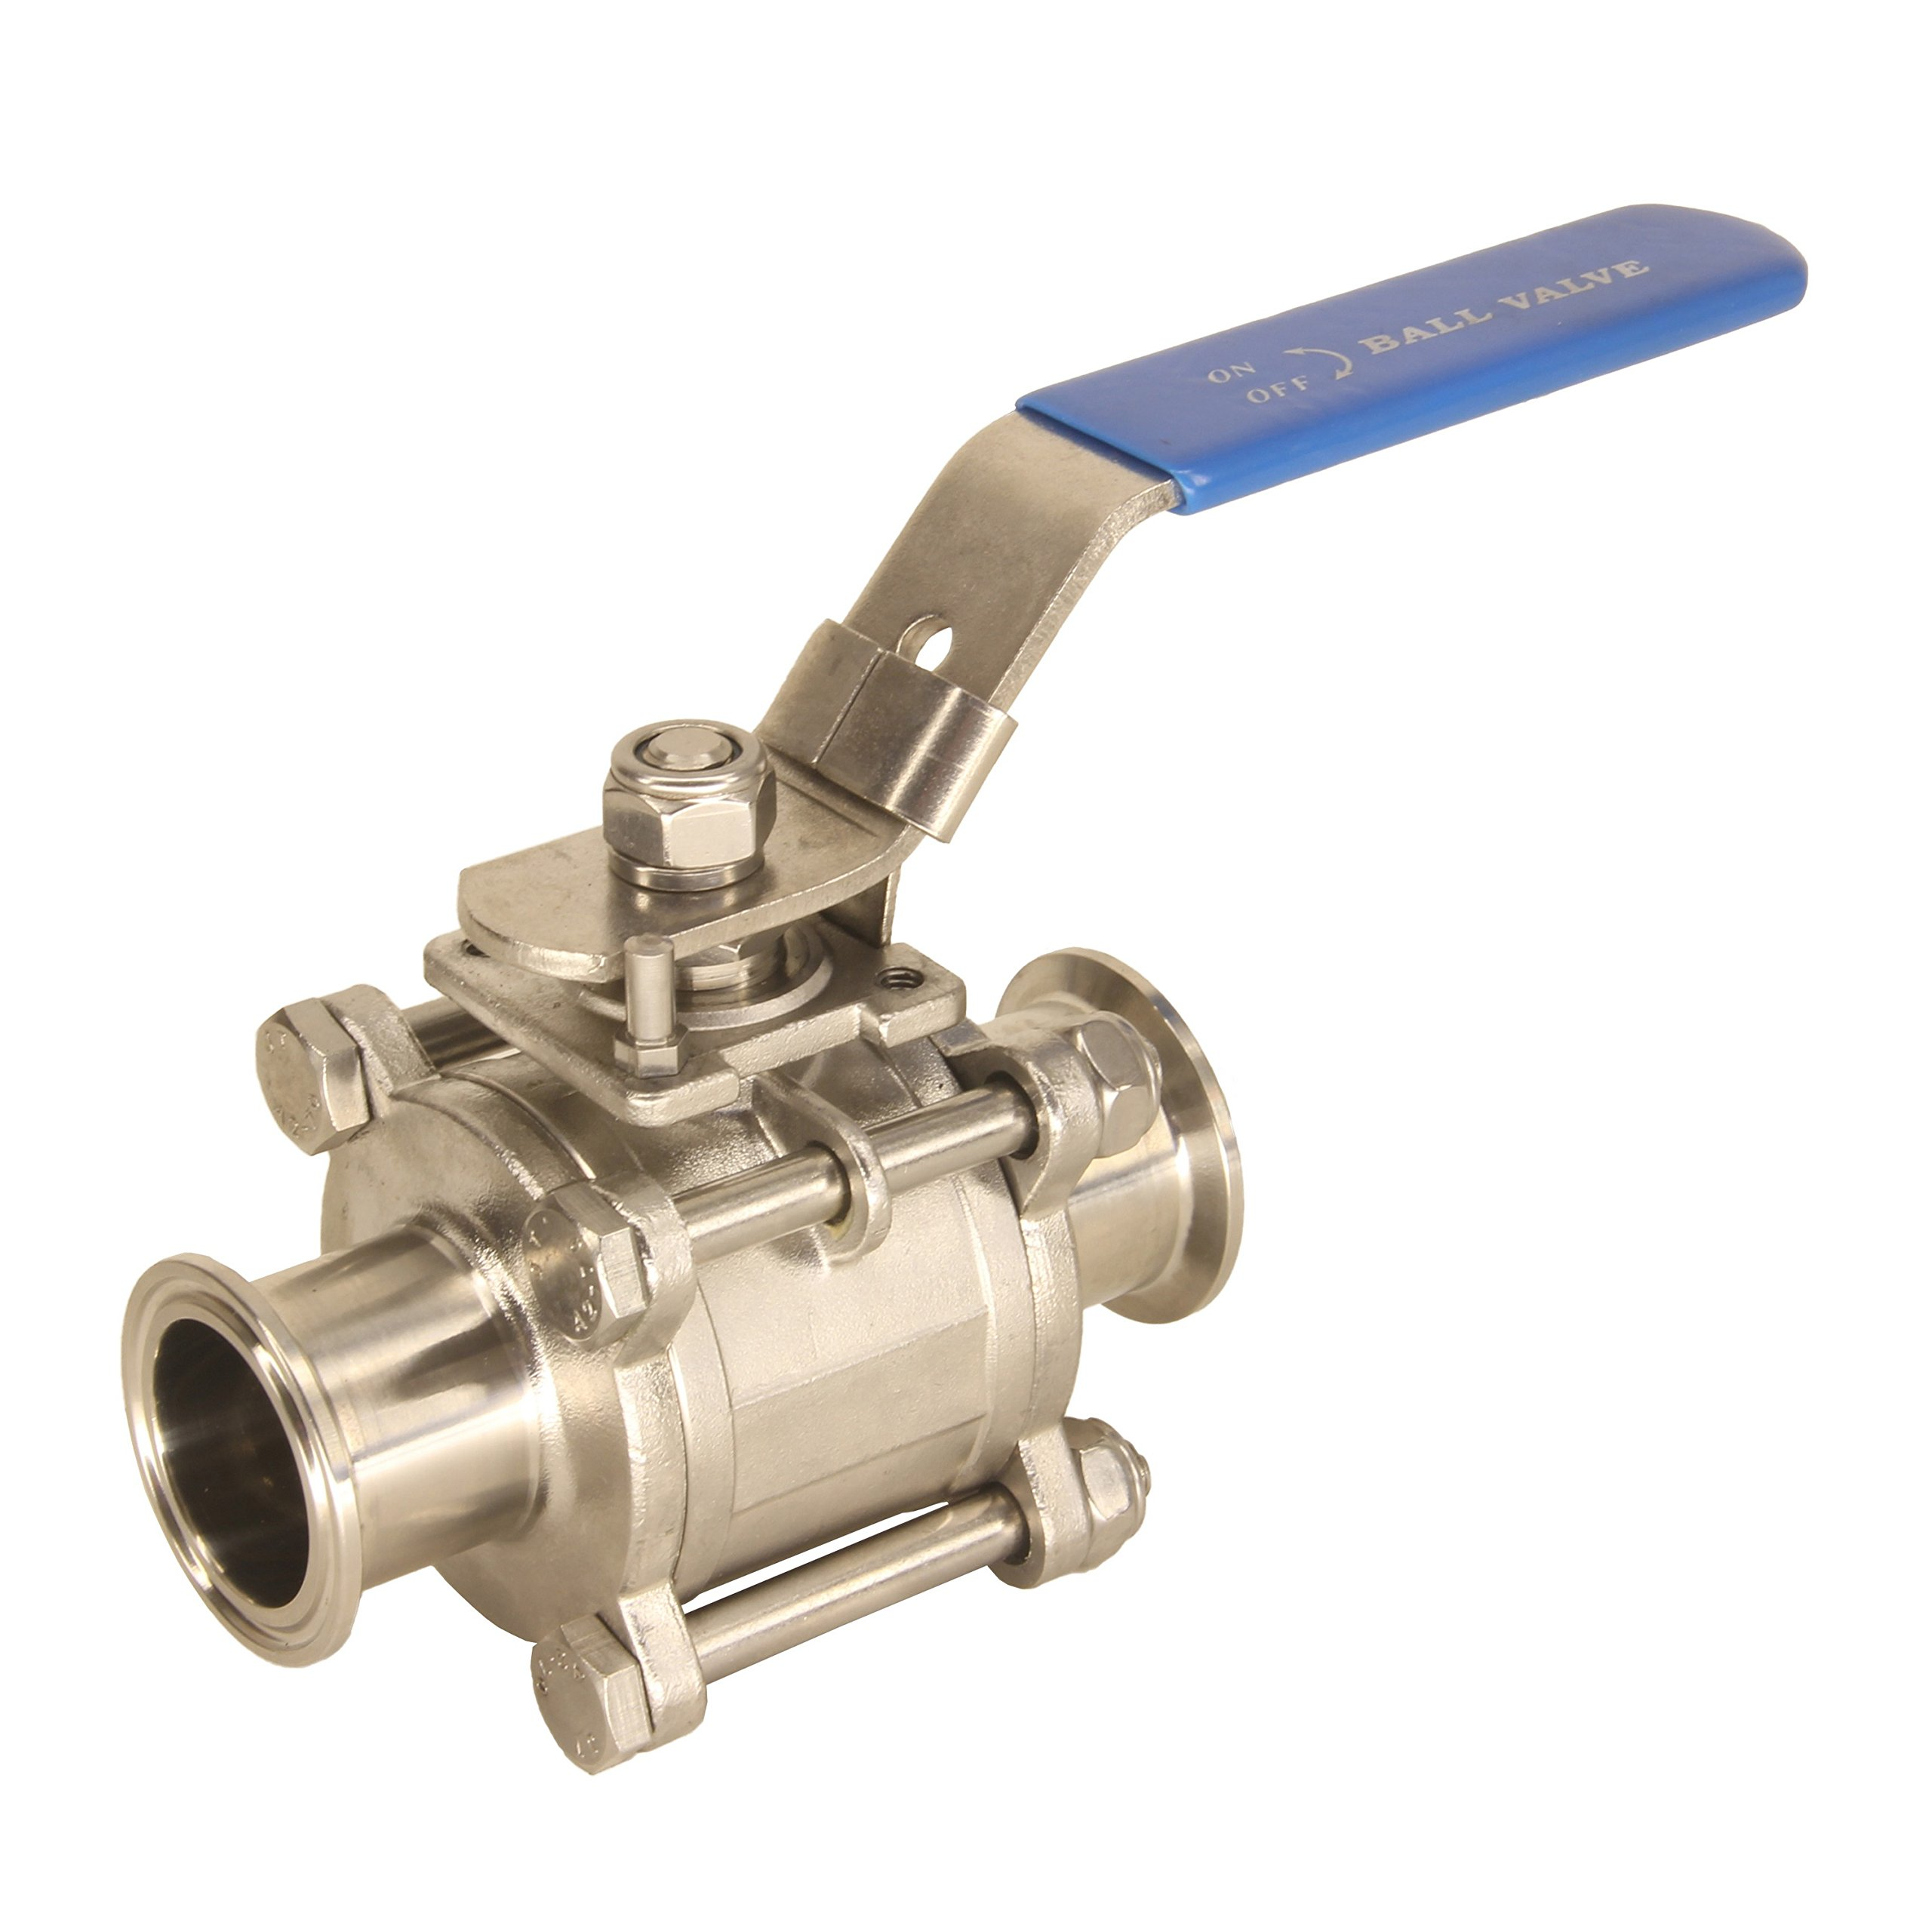 HFS (Tm) 2'' Sanitary Ball Valve - Tri Clamp Clover Stainless Steel 304, PTFE Lined